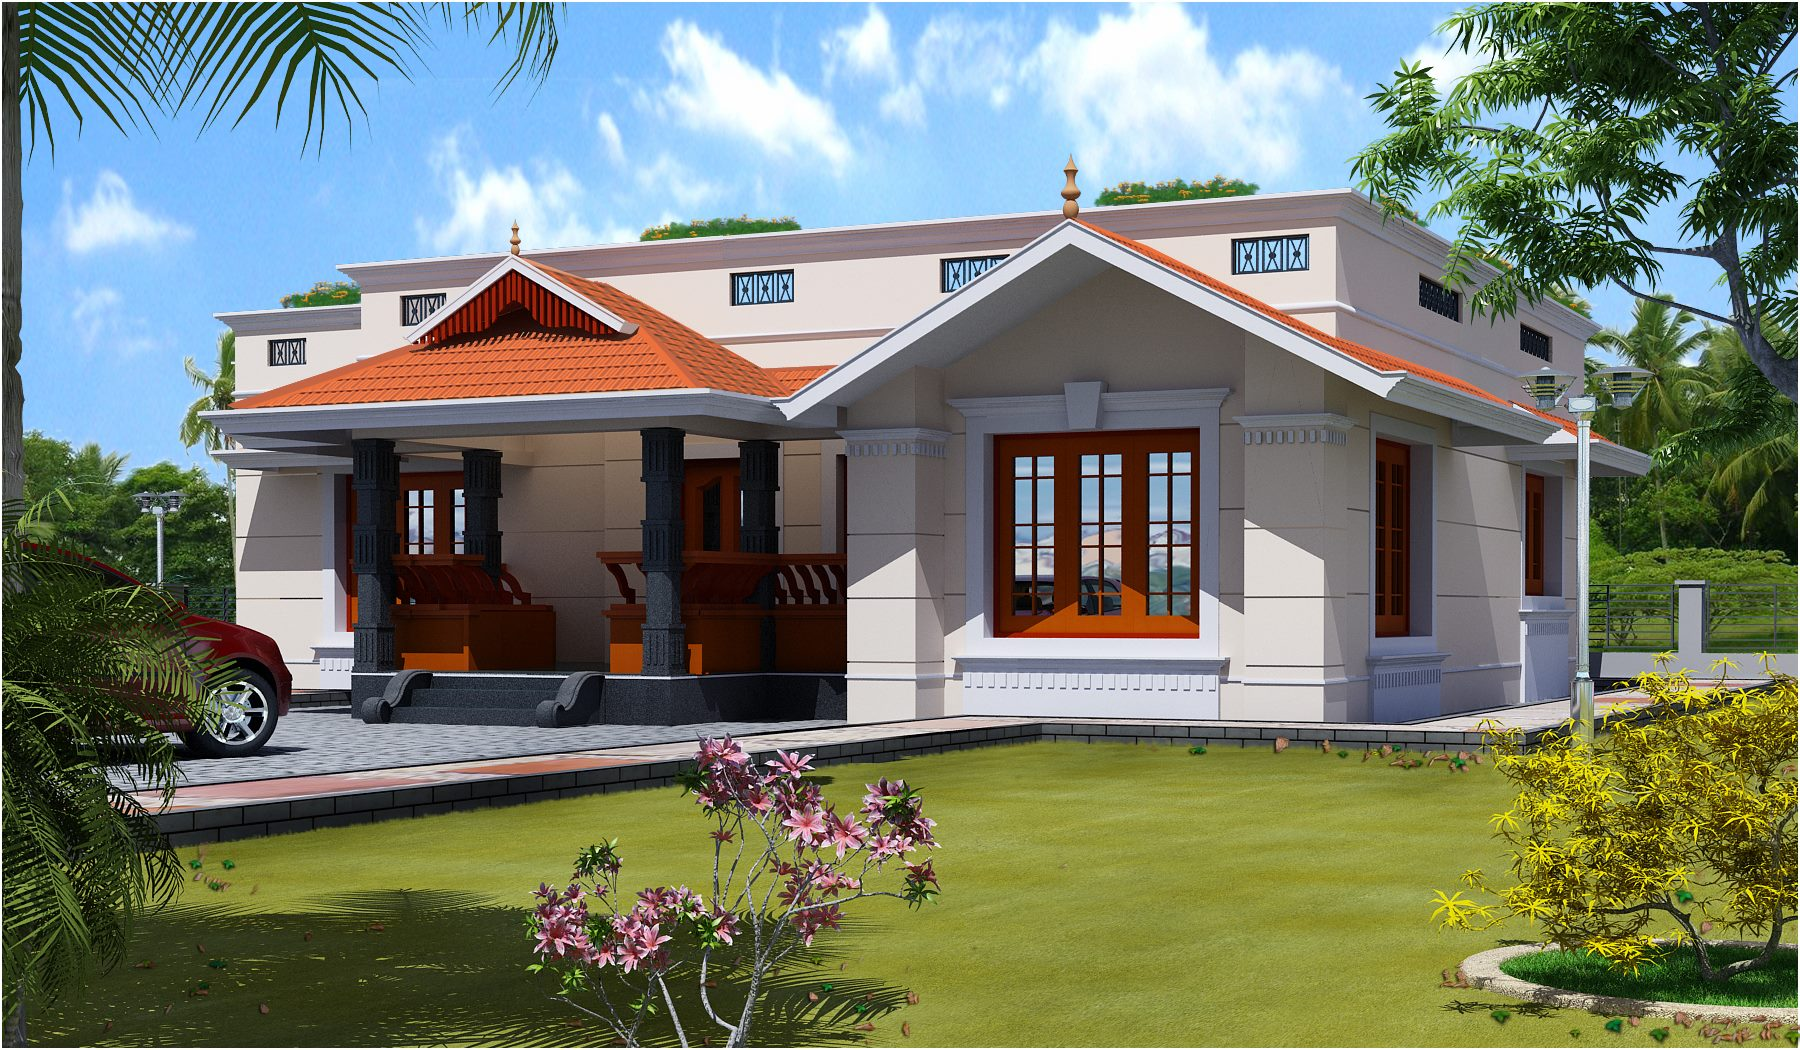 Photo of 1700 Square Feet 3 Bedroom Single Floor Low Cost Home Design